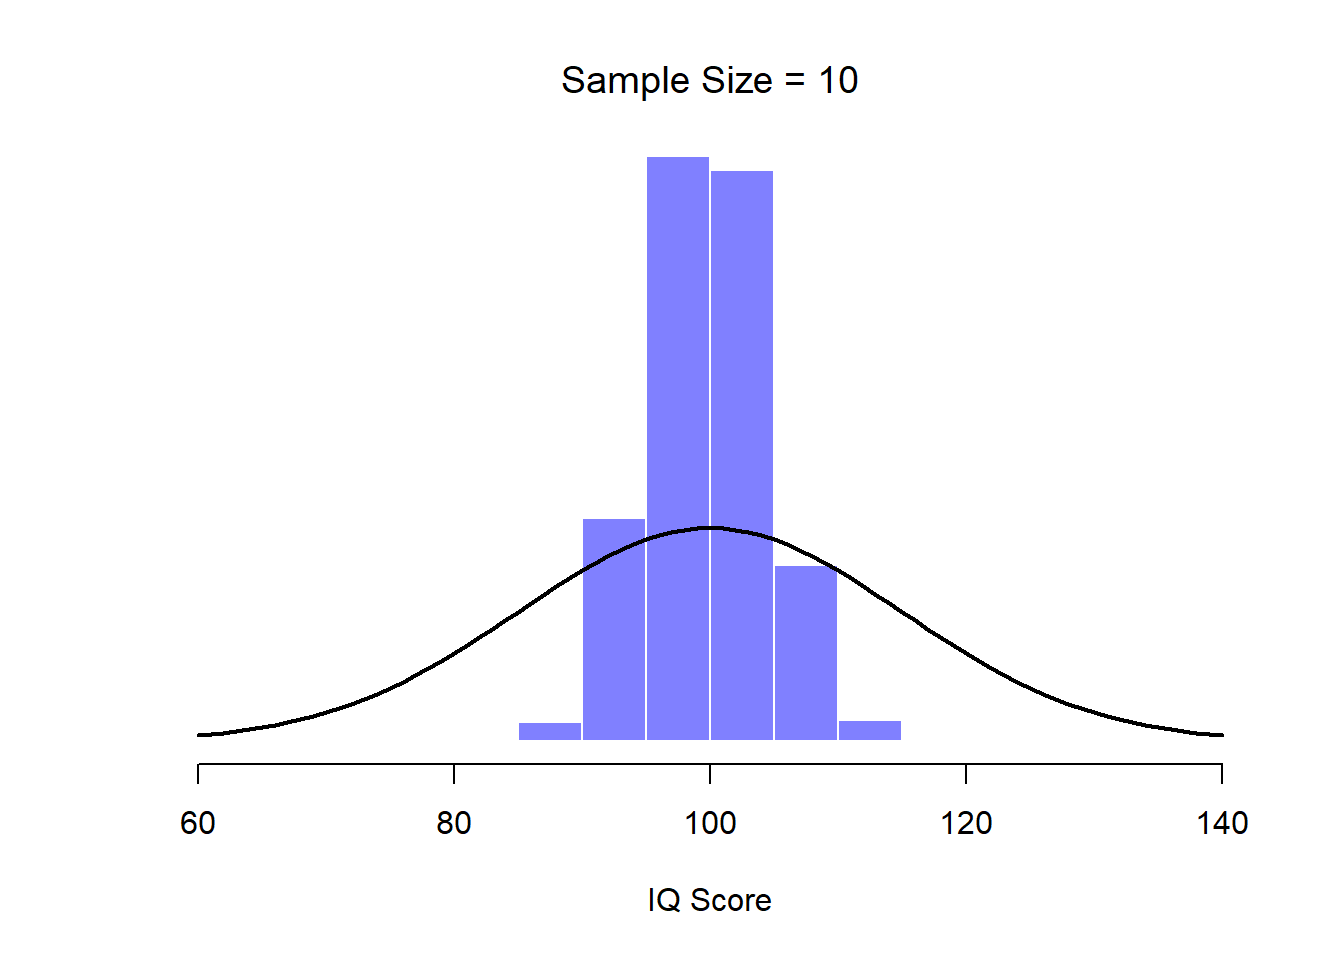 Chapter 10 Estimating unknown quantities from a sample | Learning